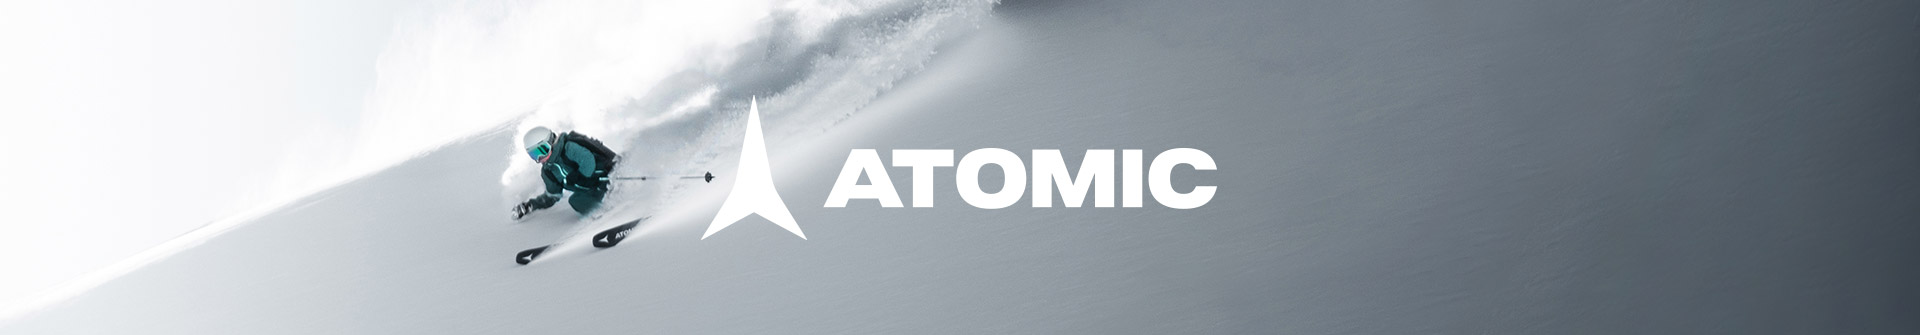 Shop Skis & Ski Equipment from Atomic, one of the best and most popular ski brands in the world. Find Atomic ski gear at your local Source For Sports ski & snowboard store.